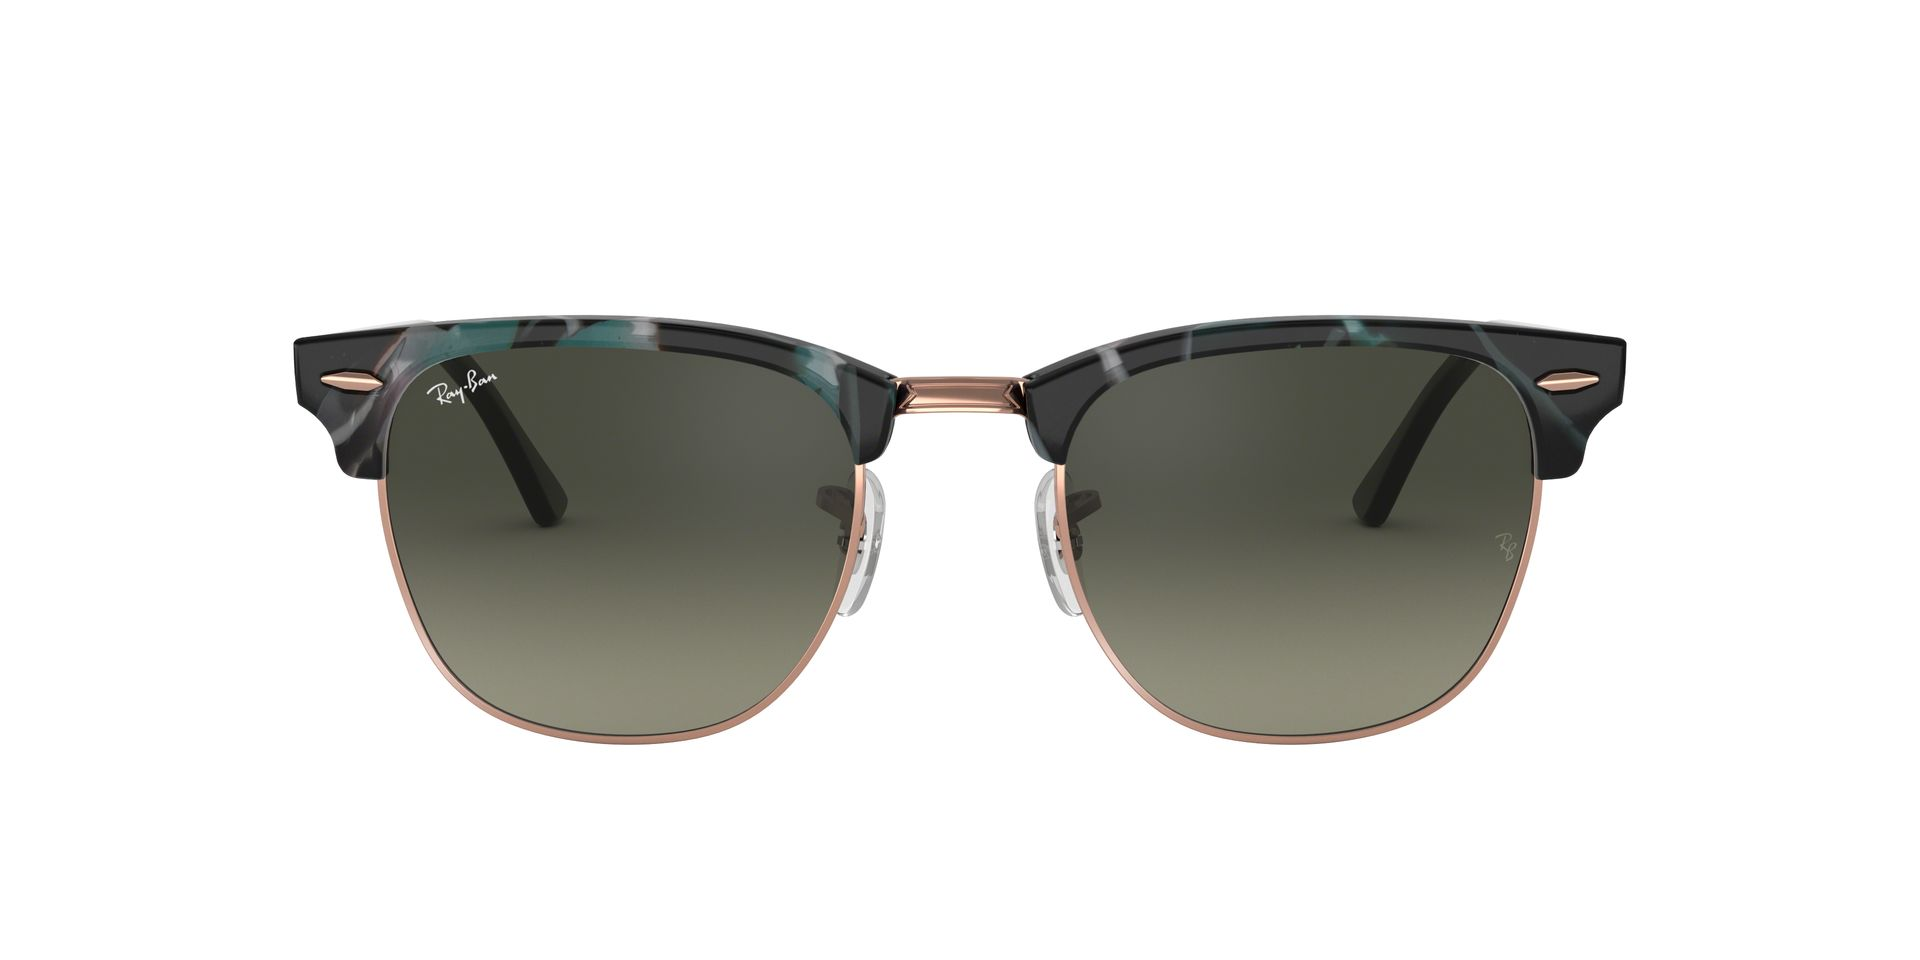 RAY-BAN CLUBMASTER RB 3016 125571-360